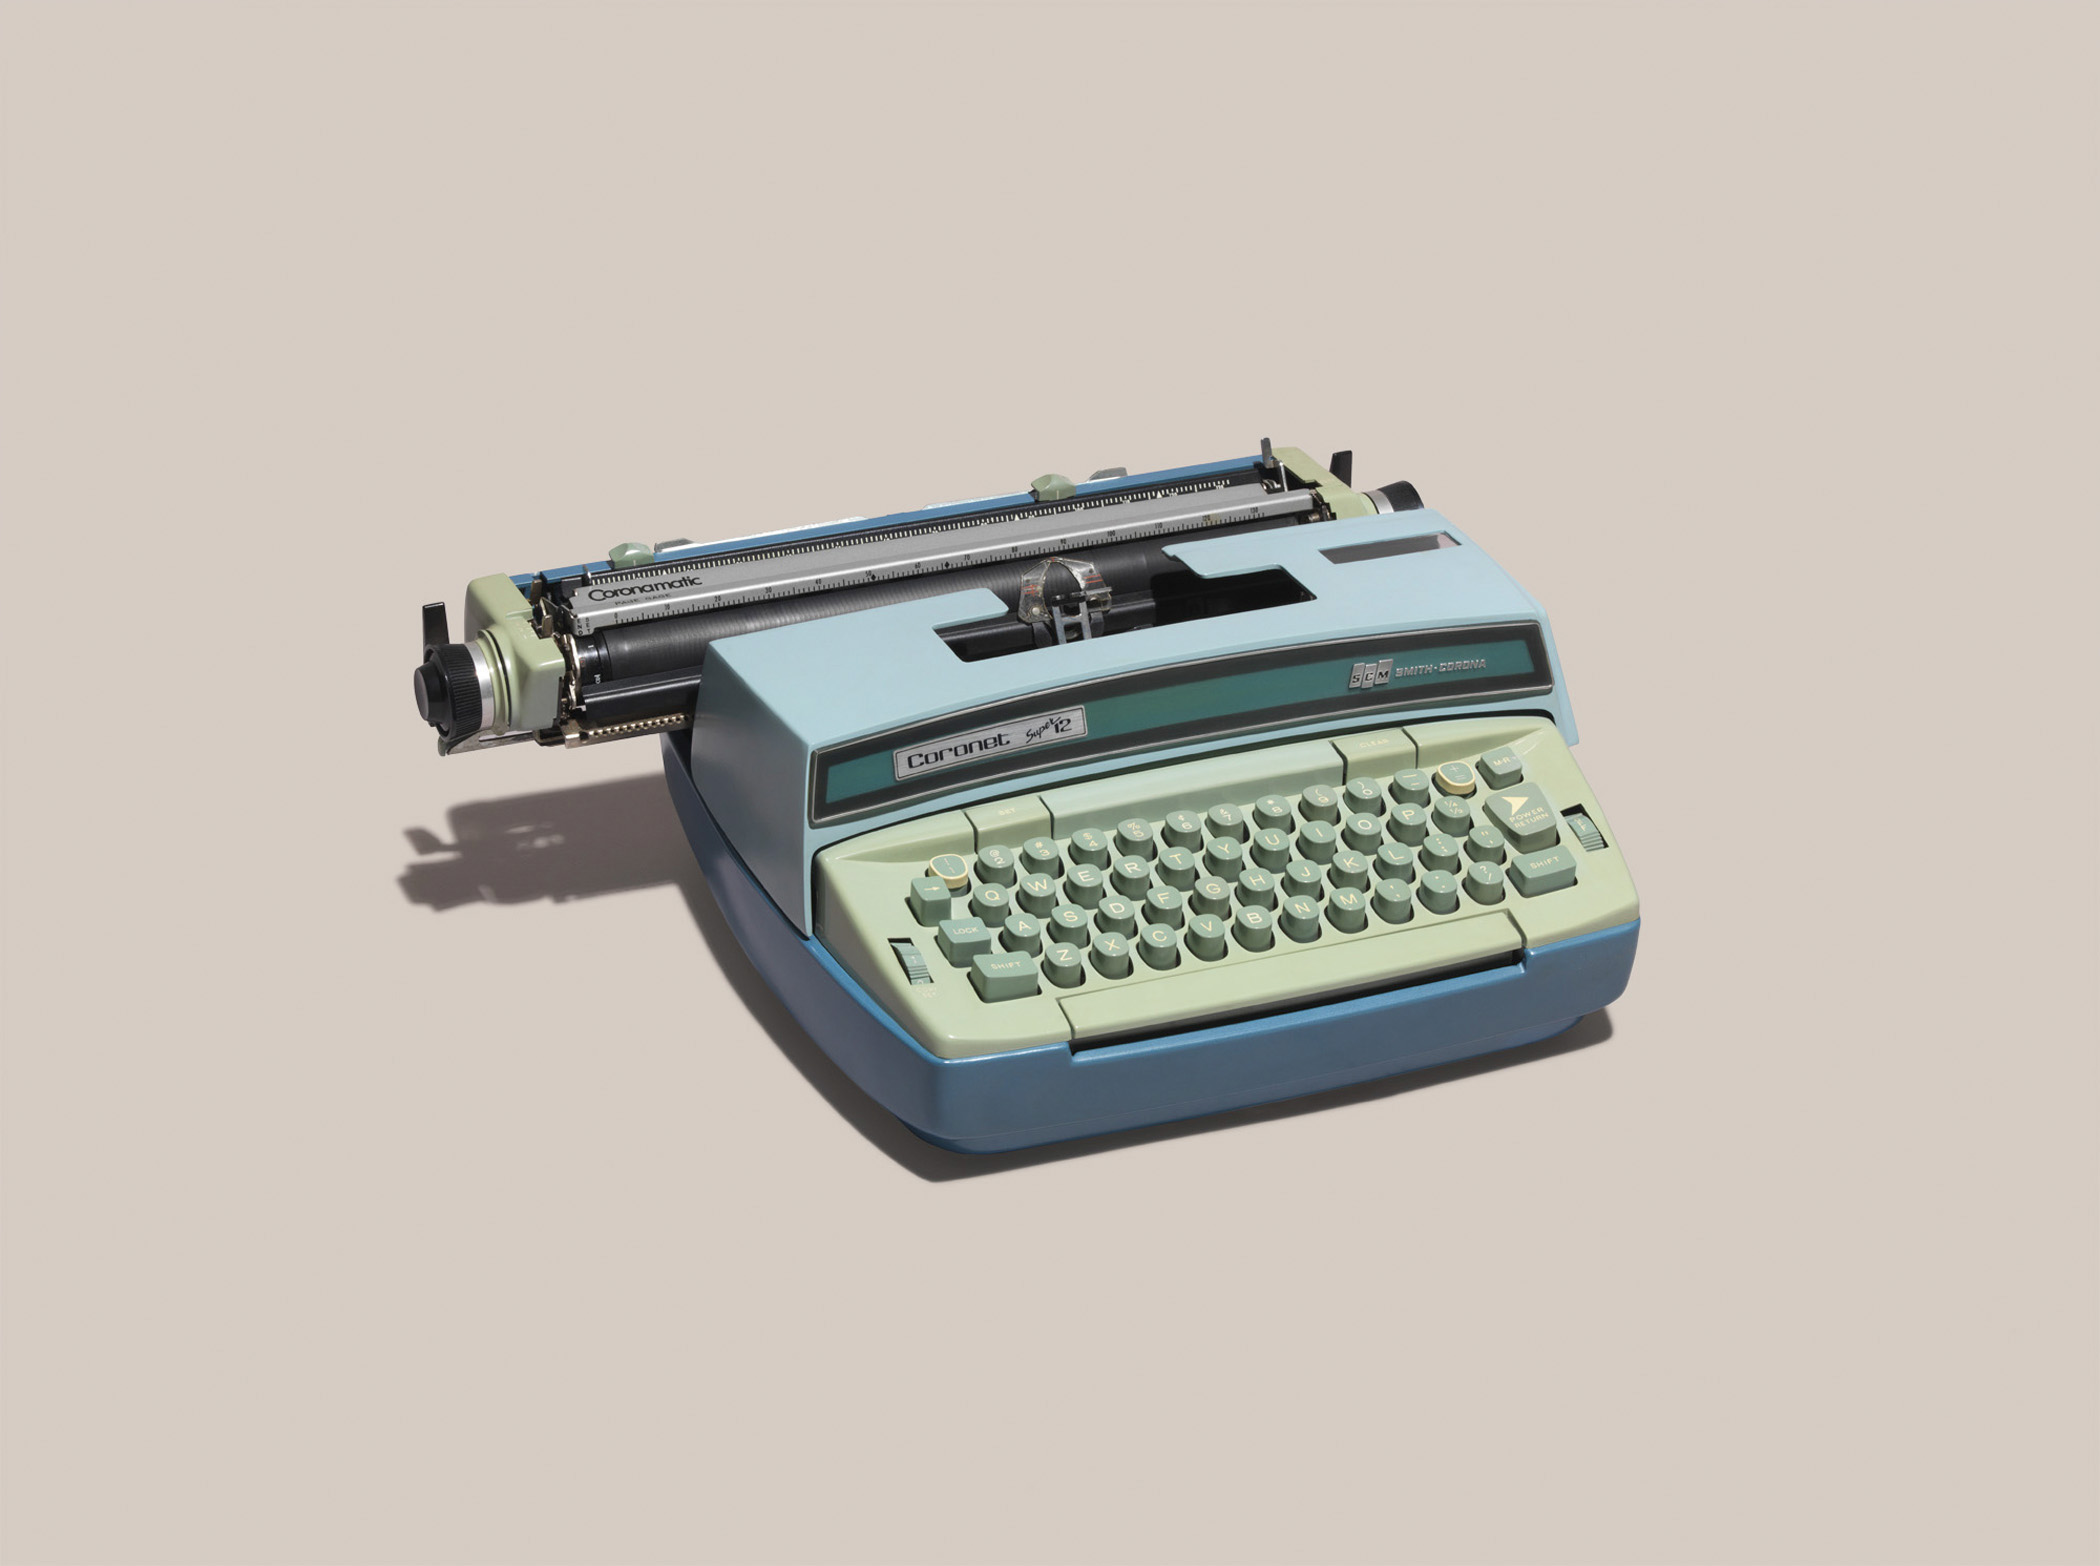 """SCM Smith-Corona, Coronet Super 12 Typewriter. 1976 List price: $160, per <a href=""""http://books.google.com/books?id=aaEnAQAAMAAJ&amp;q=SCM+Smith-Corona+Coronet+Super+12&amp;dq=SCM+Smith-Corona+Coronet+Super+12&amp;hl=en&amp;sa=X&amp;ei=-DkcVLPCG-jCsASJhoKgBg&amp;ved=0CEMQ6AEwAg"""" title=""""Consumers' Research Handbook of Buying"""" target=""""_blank"""">Consumers' Research Handbook of Buying. </a><strong>Today's equivalent:</strong>  Apple MacBook Air. List Price: Starting at $899, available at <a href=""""http://store.apple.com/us/buy-mac/macbook-pro"""" title=""""The Apple Store"""" target=""""_blank"""">The Apple Store</a>."""